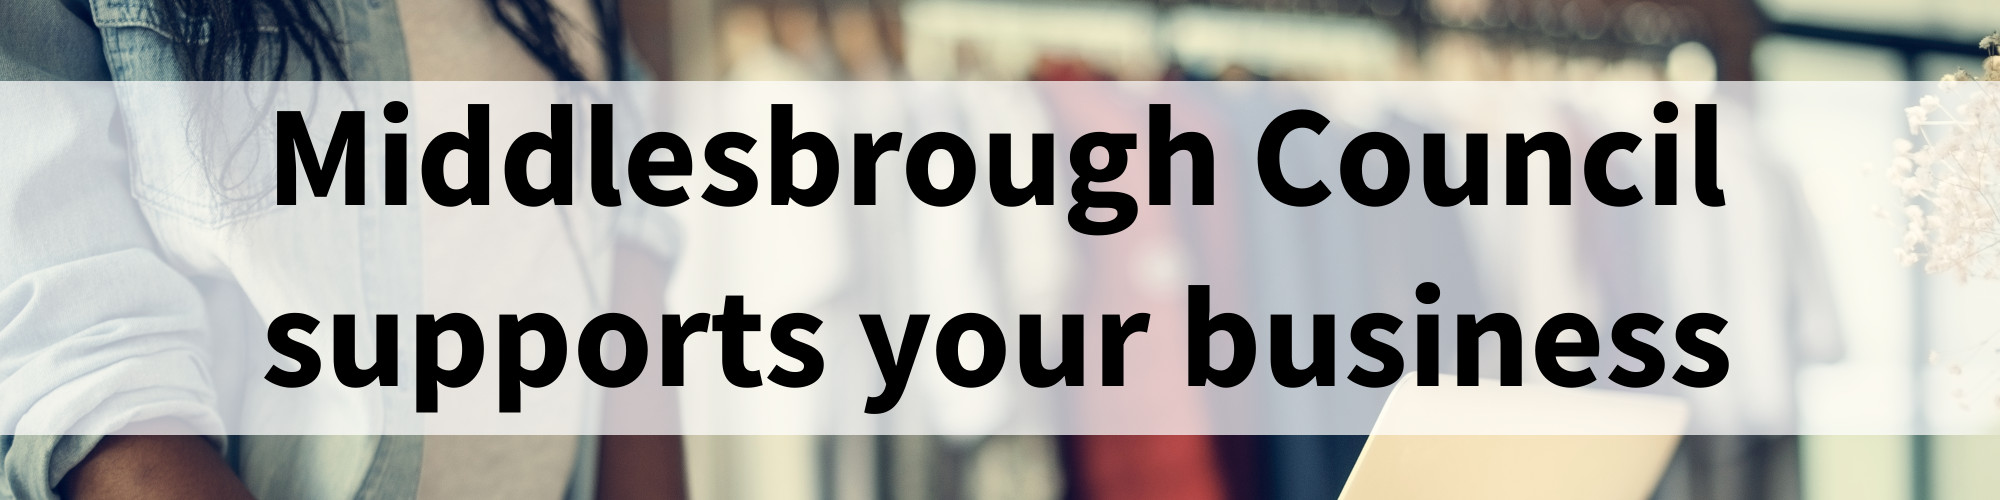 Middlesbrough Council supports your business